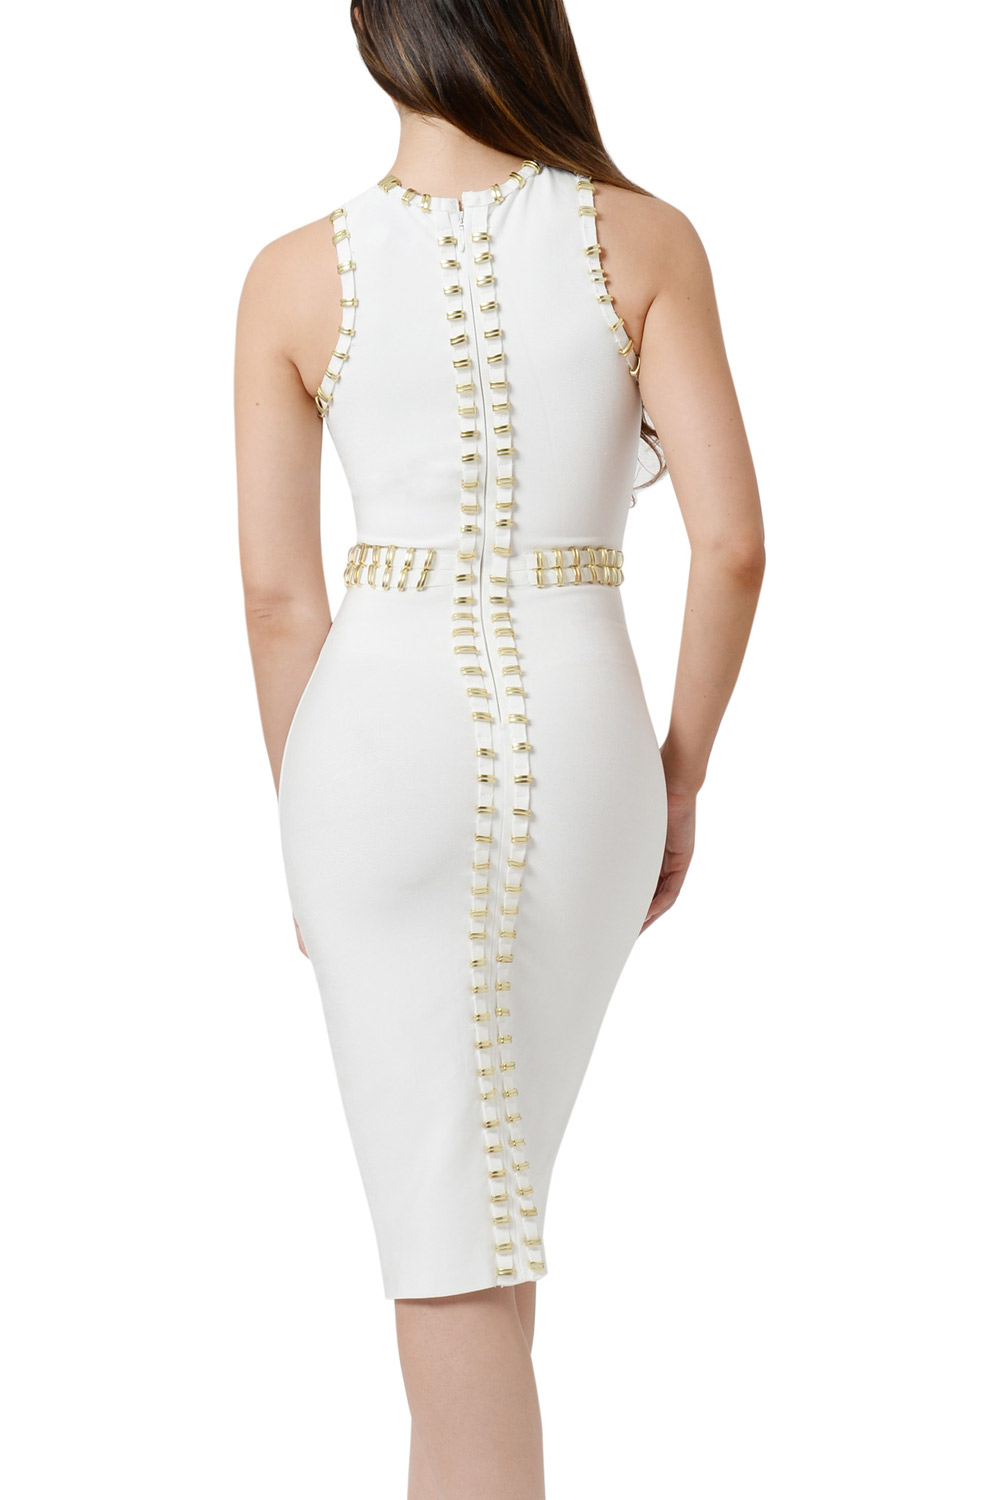 Gold Metal Embellished Detail White